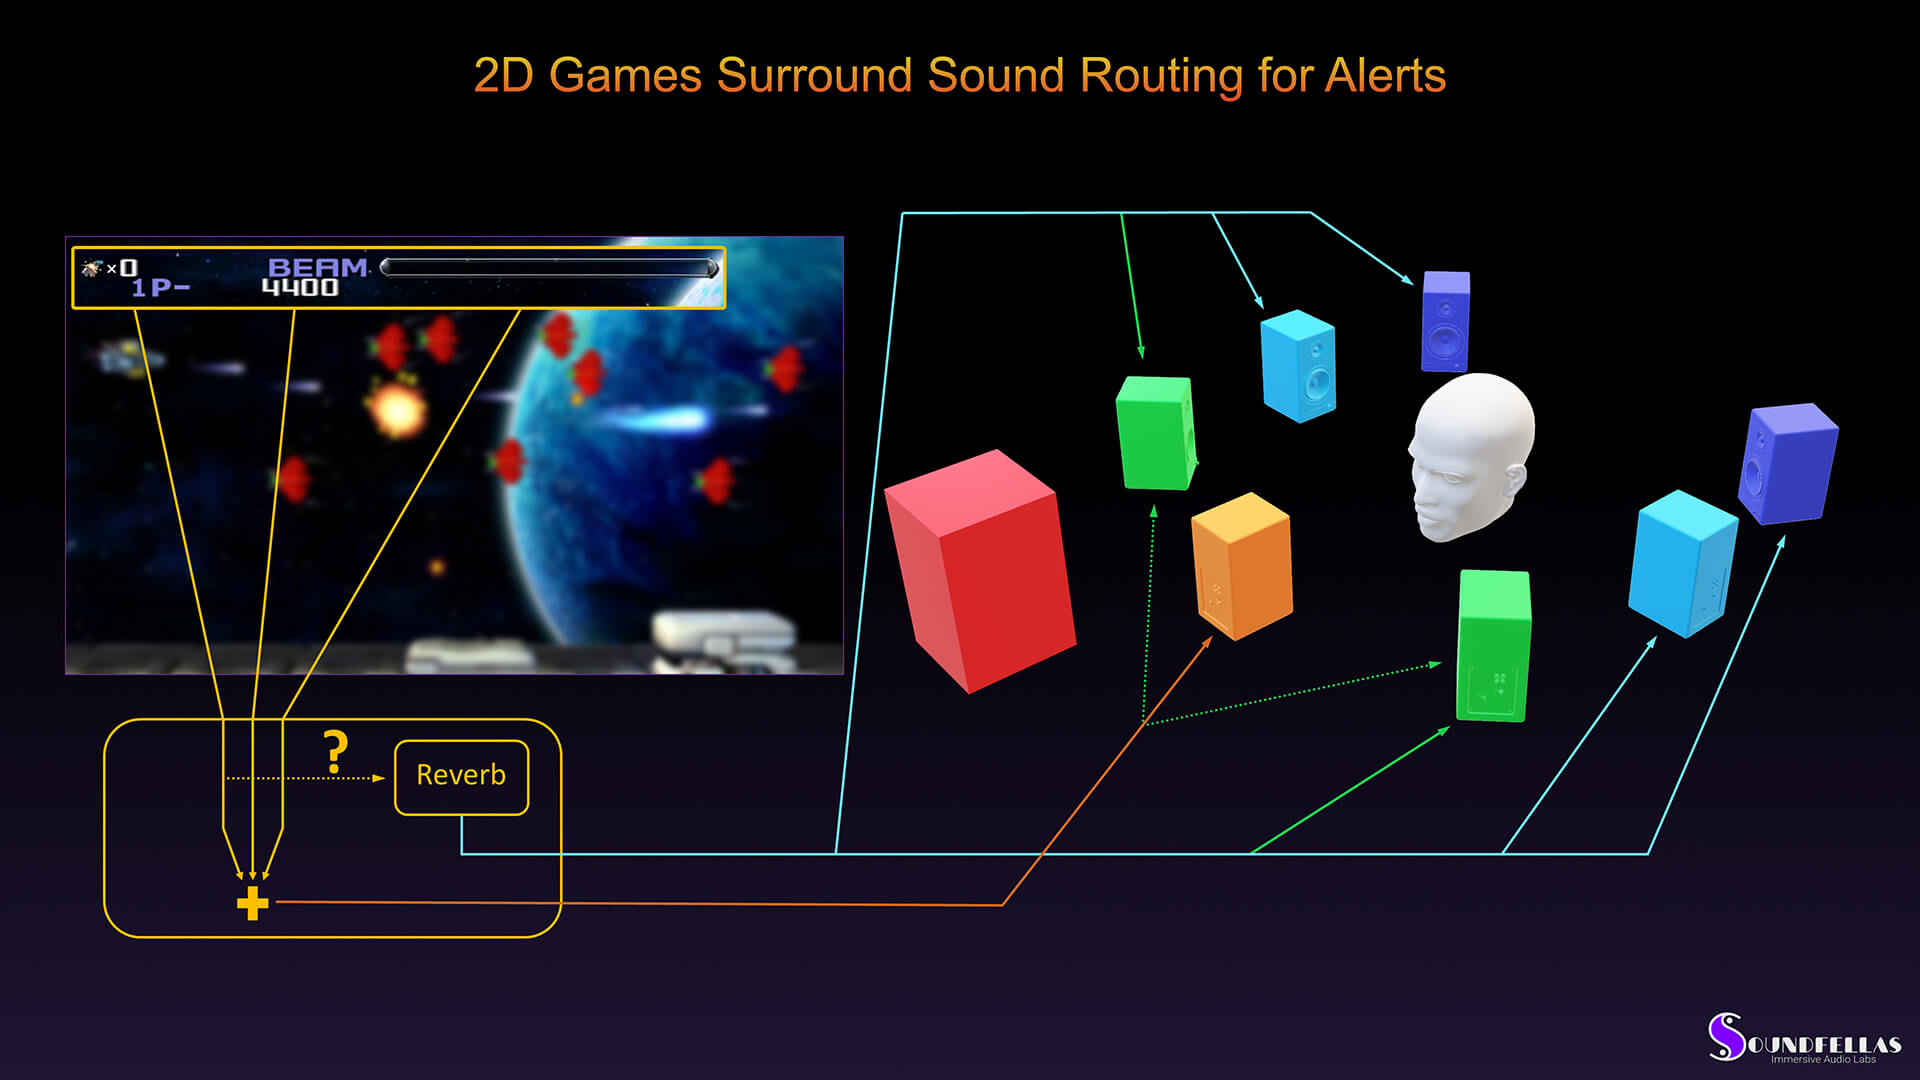 Image of 2D game surround sound routing for alerts.